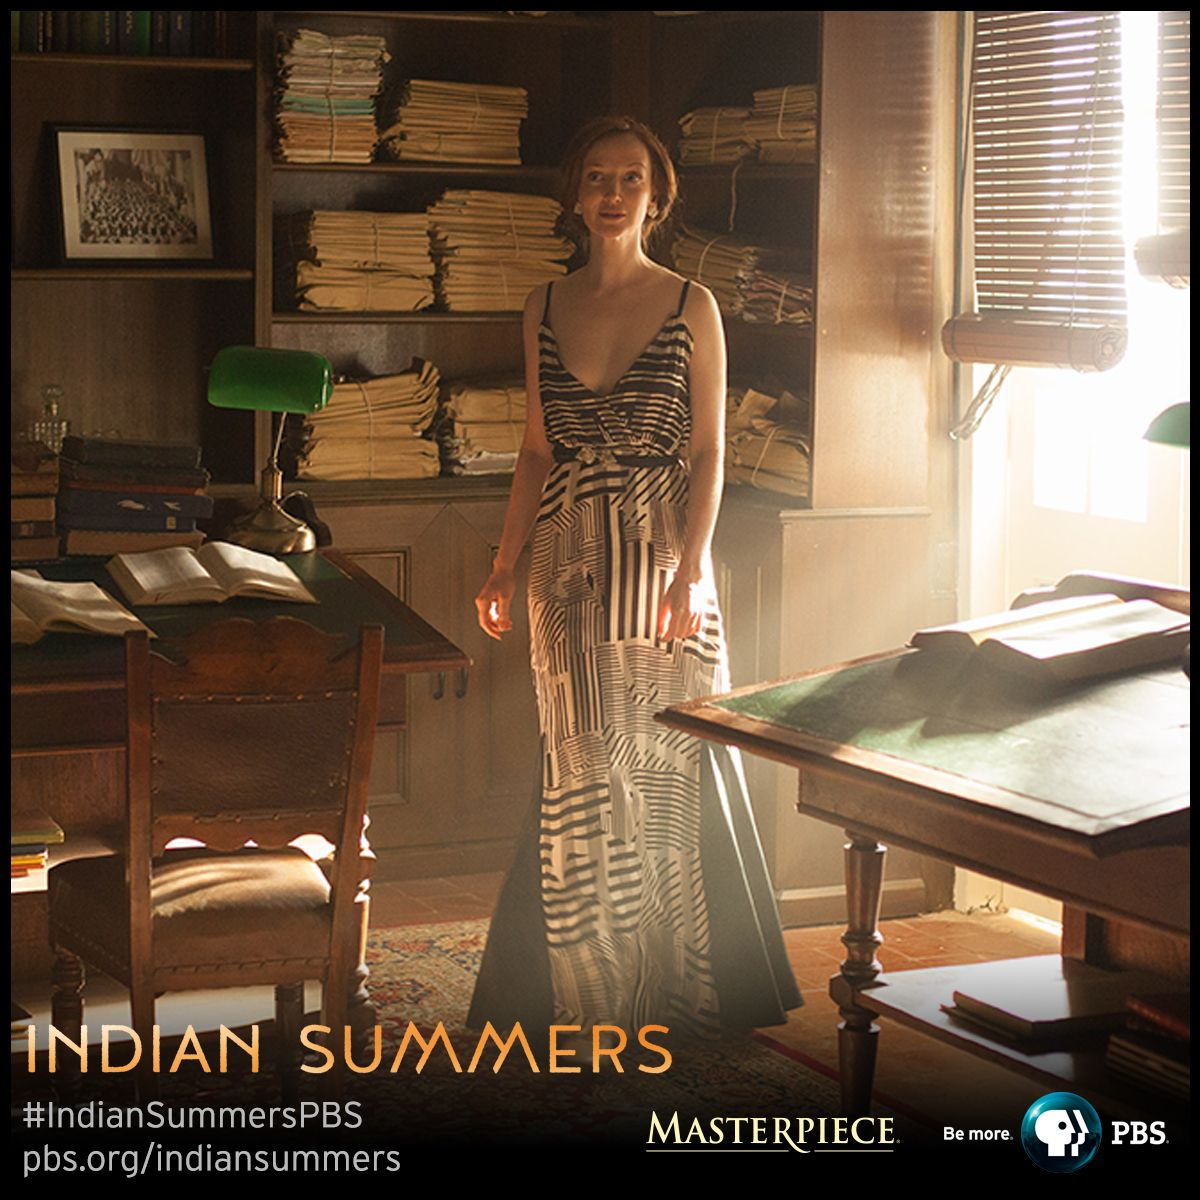 Madeleine Mathers (Olivia Grant) | Indian Summers, as seen on MASTERPIECE on PBS